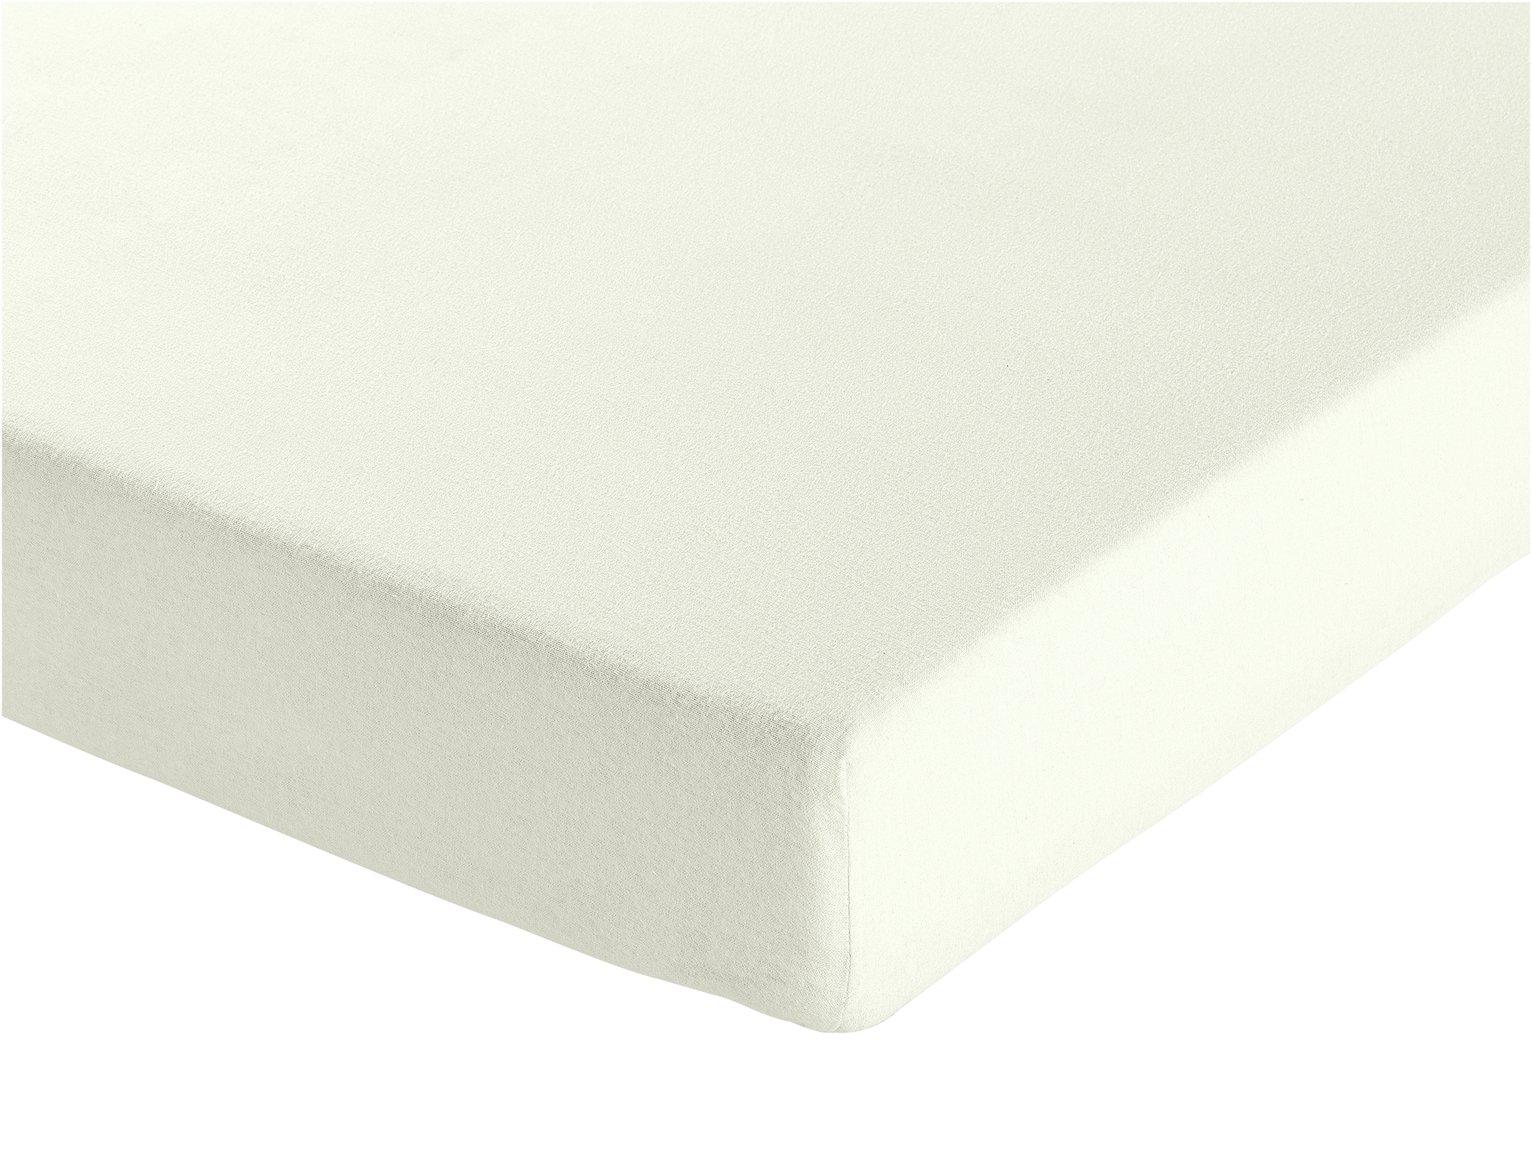 Argos Home Cream Brushed Cotton Fitted Sheet - Single